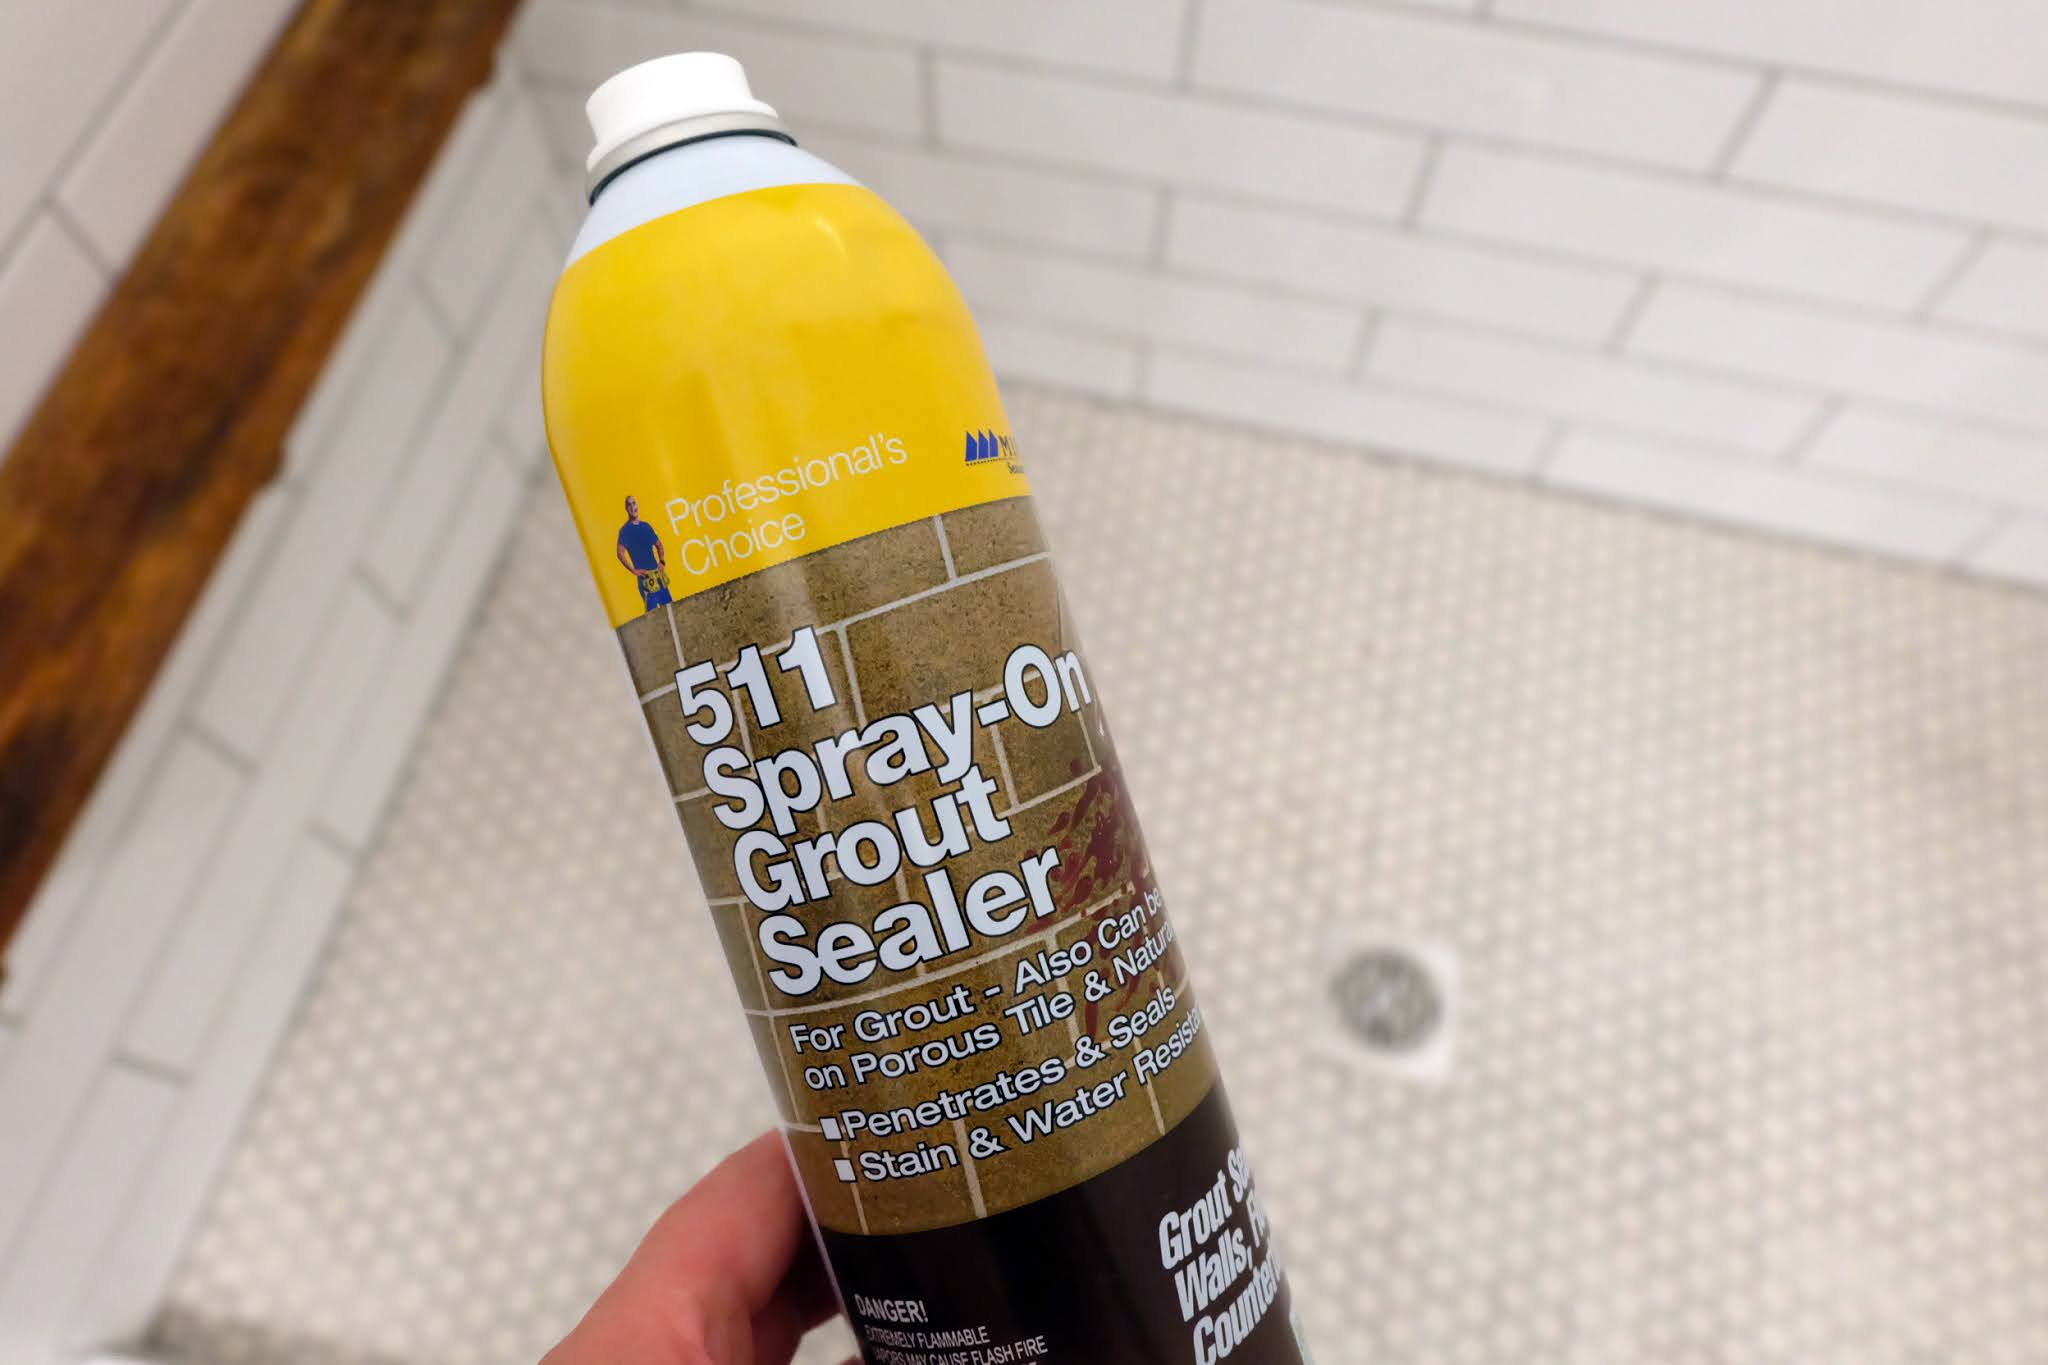 can of grout and tile sealer